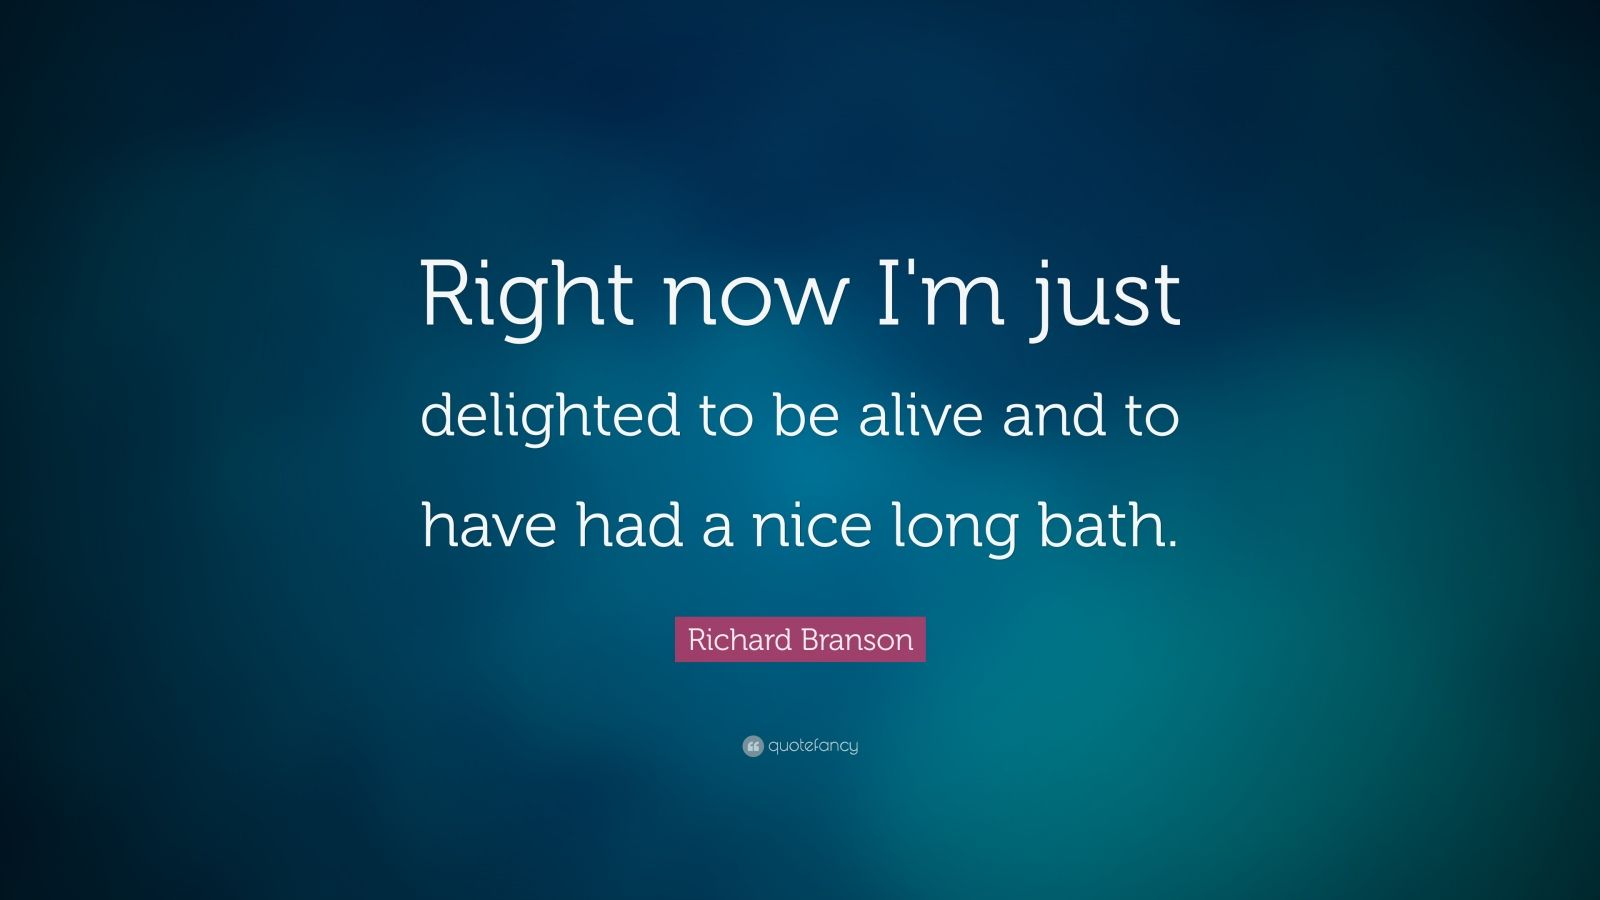 """Richard Branson Quote: """"Right now I'm just delighted to be alive and to have had a nice long bath."""""""